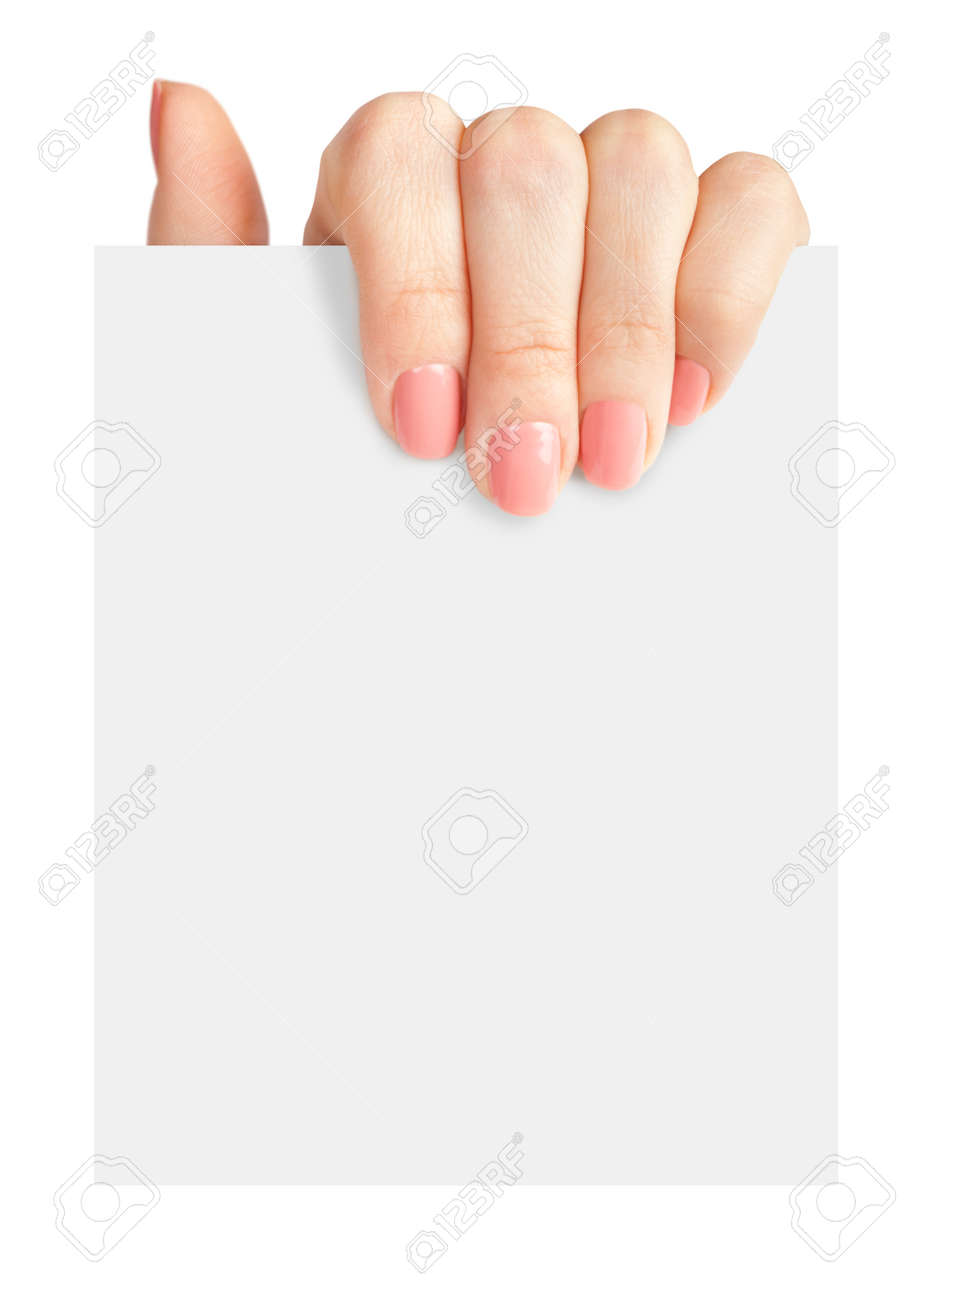 Business Card Blank Images - Free Business Cards